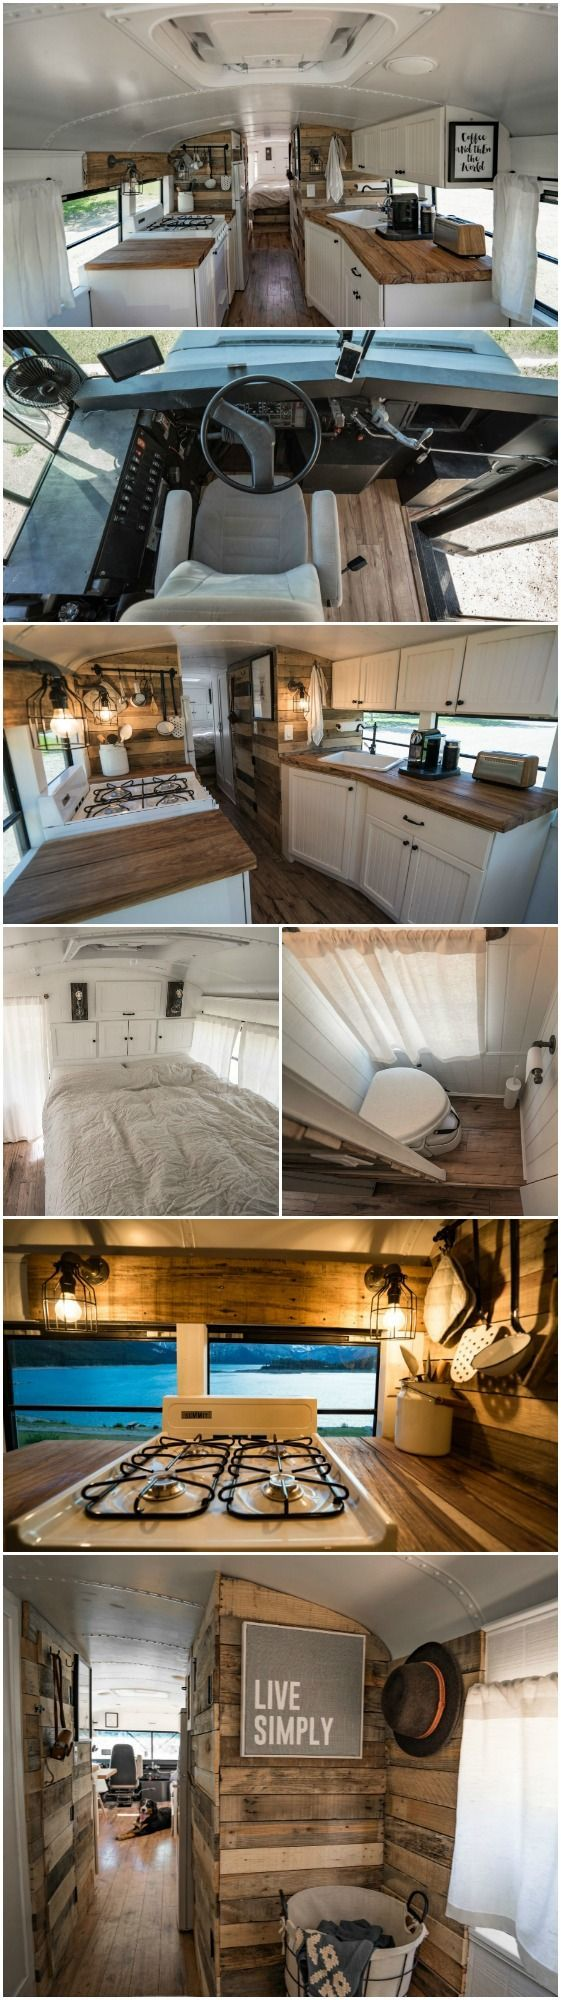 It Used To Be a School Bus … Now It's a Cozy Loft On Wheels! When most of us think of buying a house, we turn to the real estate classifieds—but not Felix Starck and Selima Taibi of Expedition Happiness.